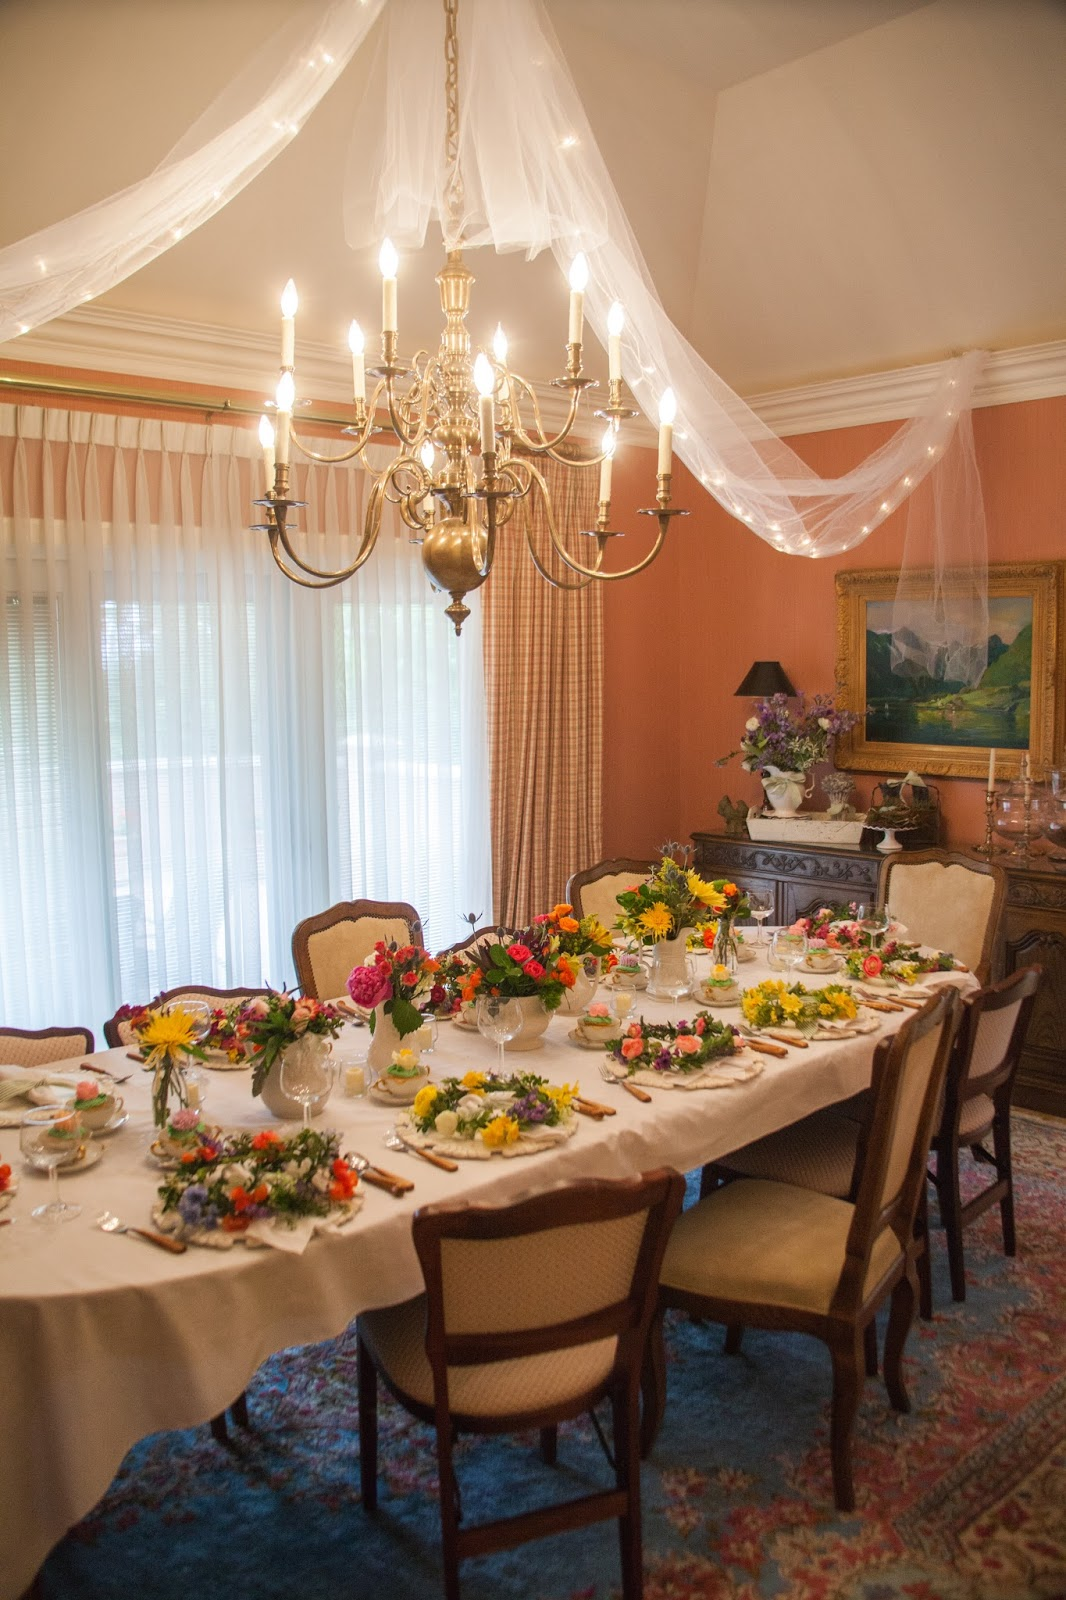 Here Are The Pictures Of The Decor: